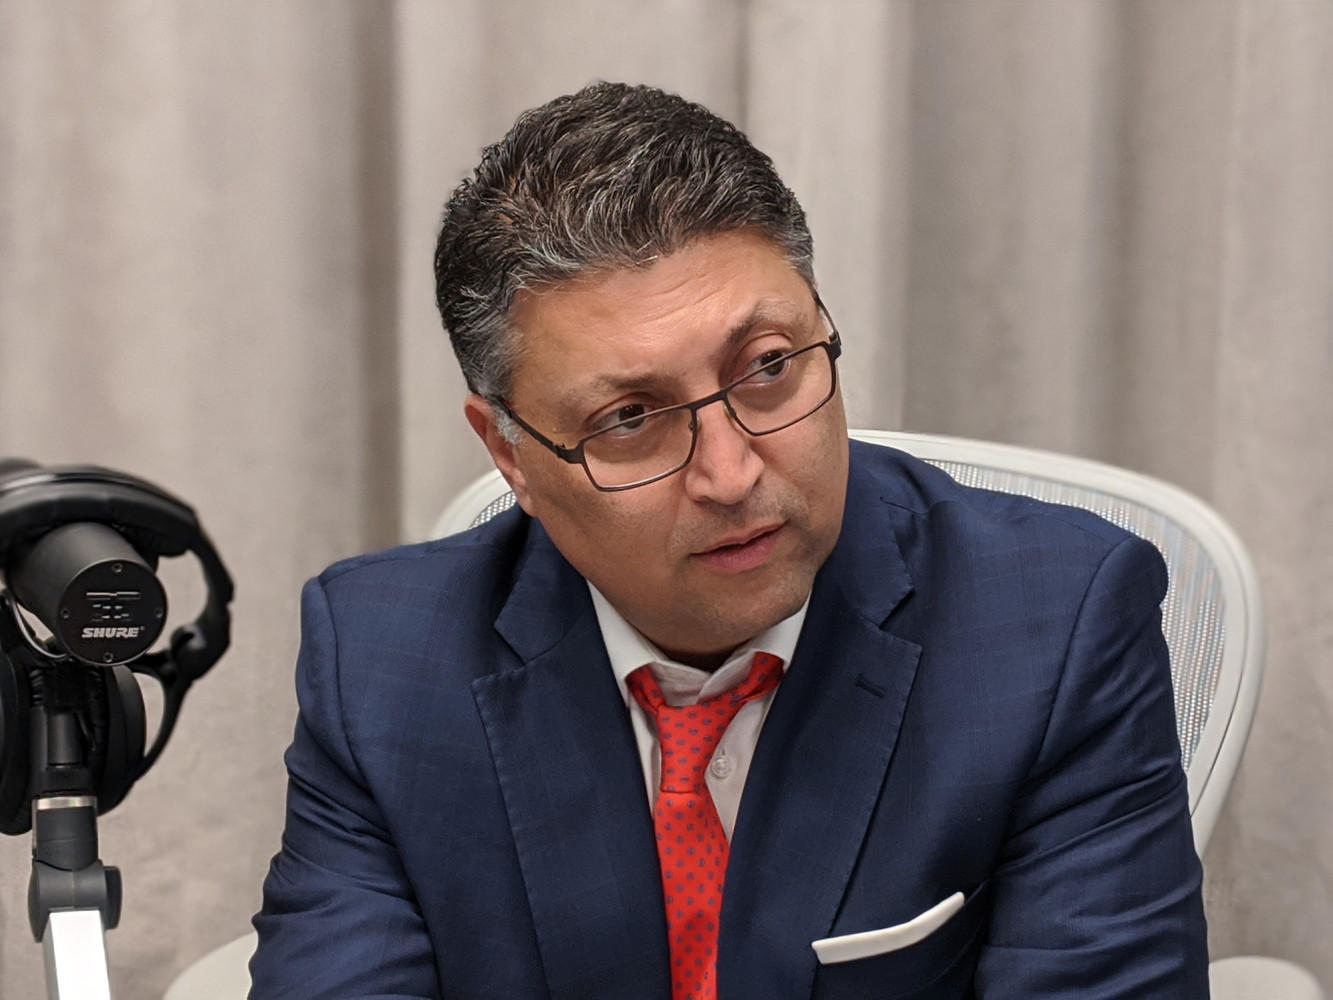 Ep 15 - ANTITRUST, CONSUMER PROTECTION, AND PRIVACY | Guest: Assistant Attorney General Makan Delrahim